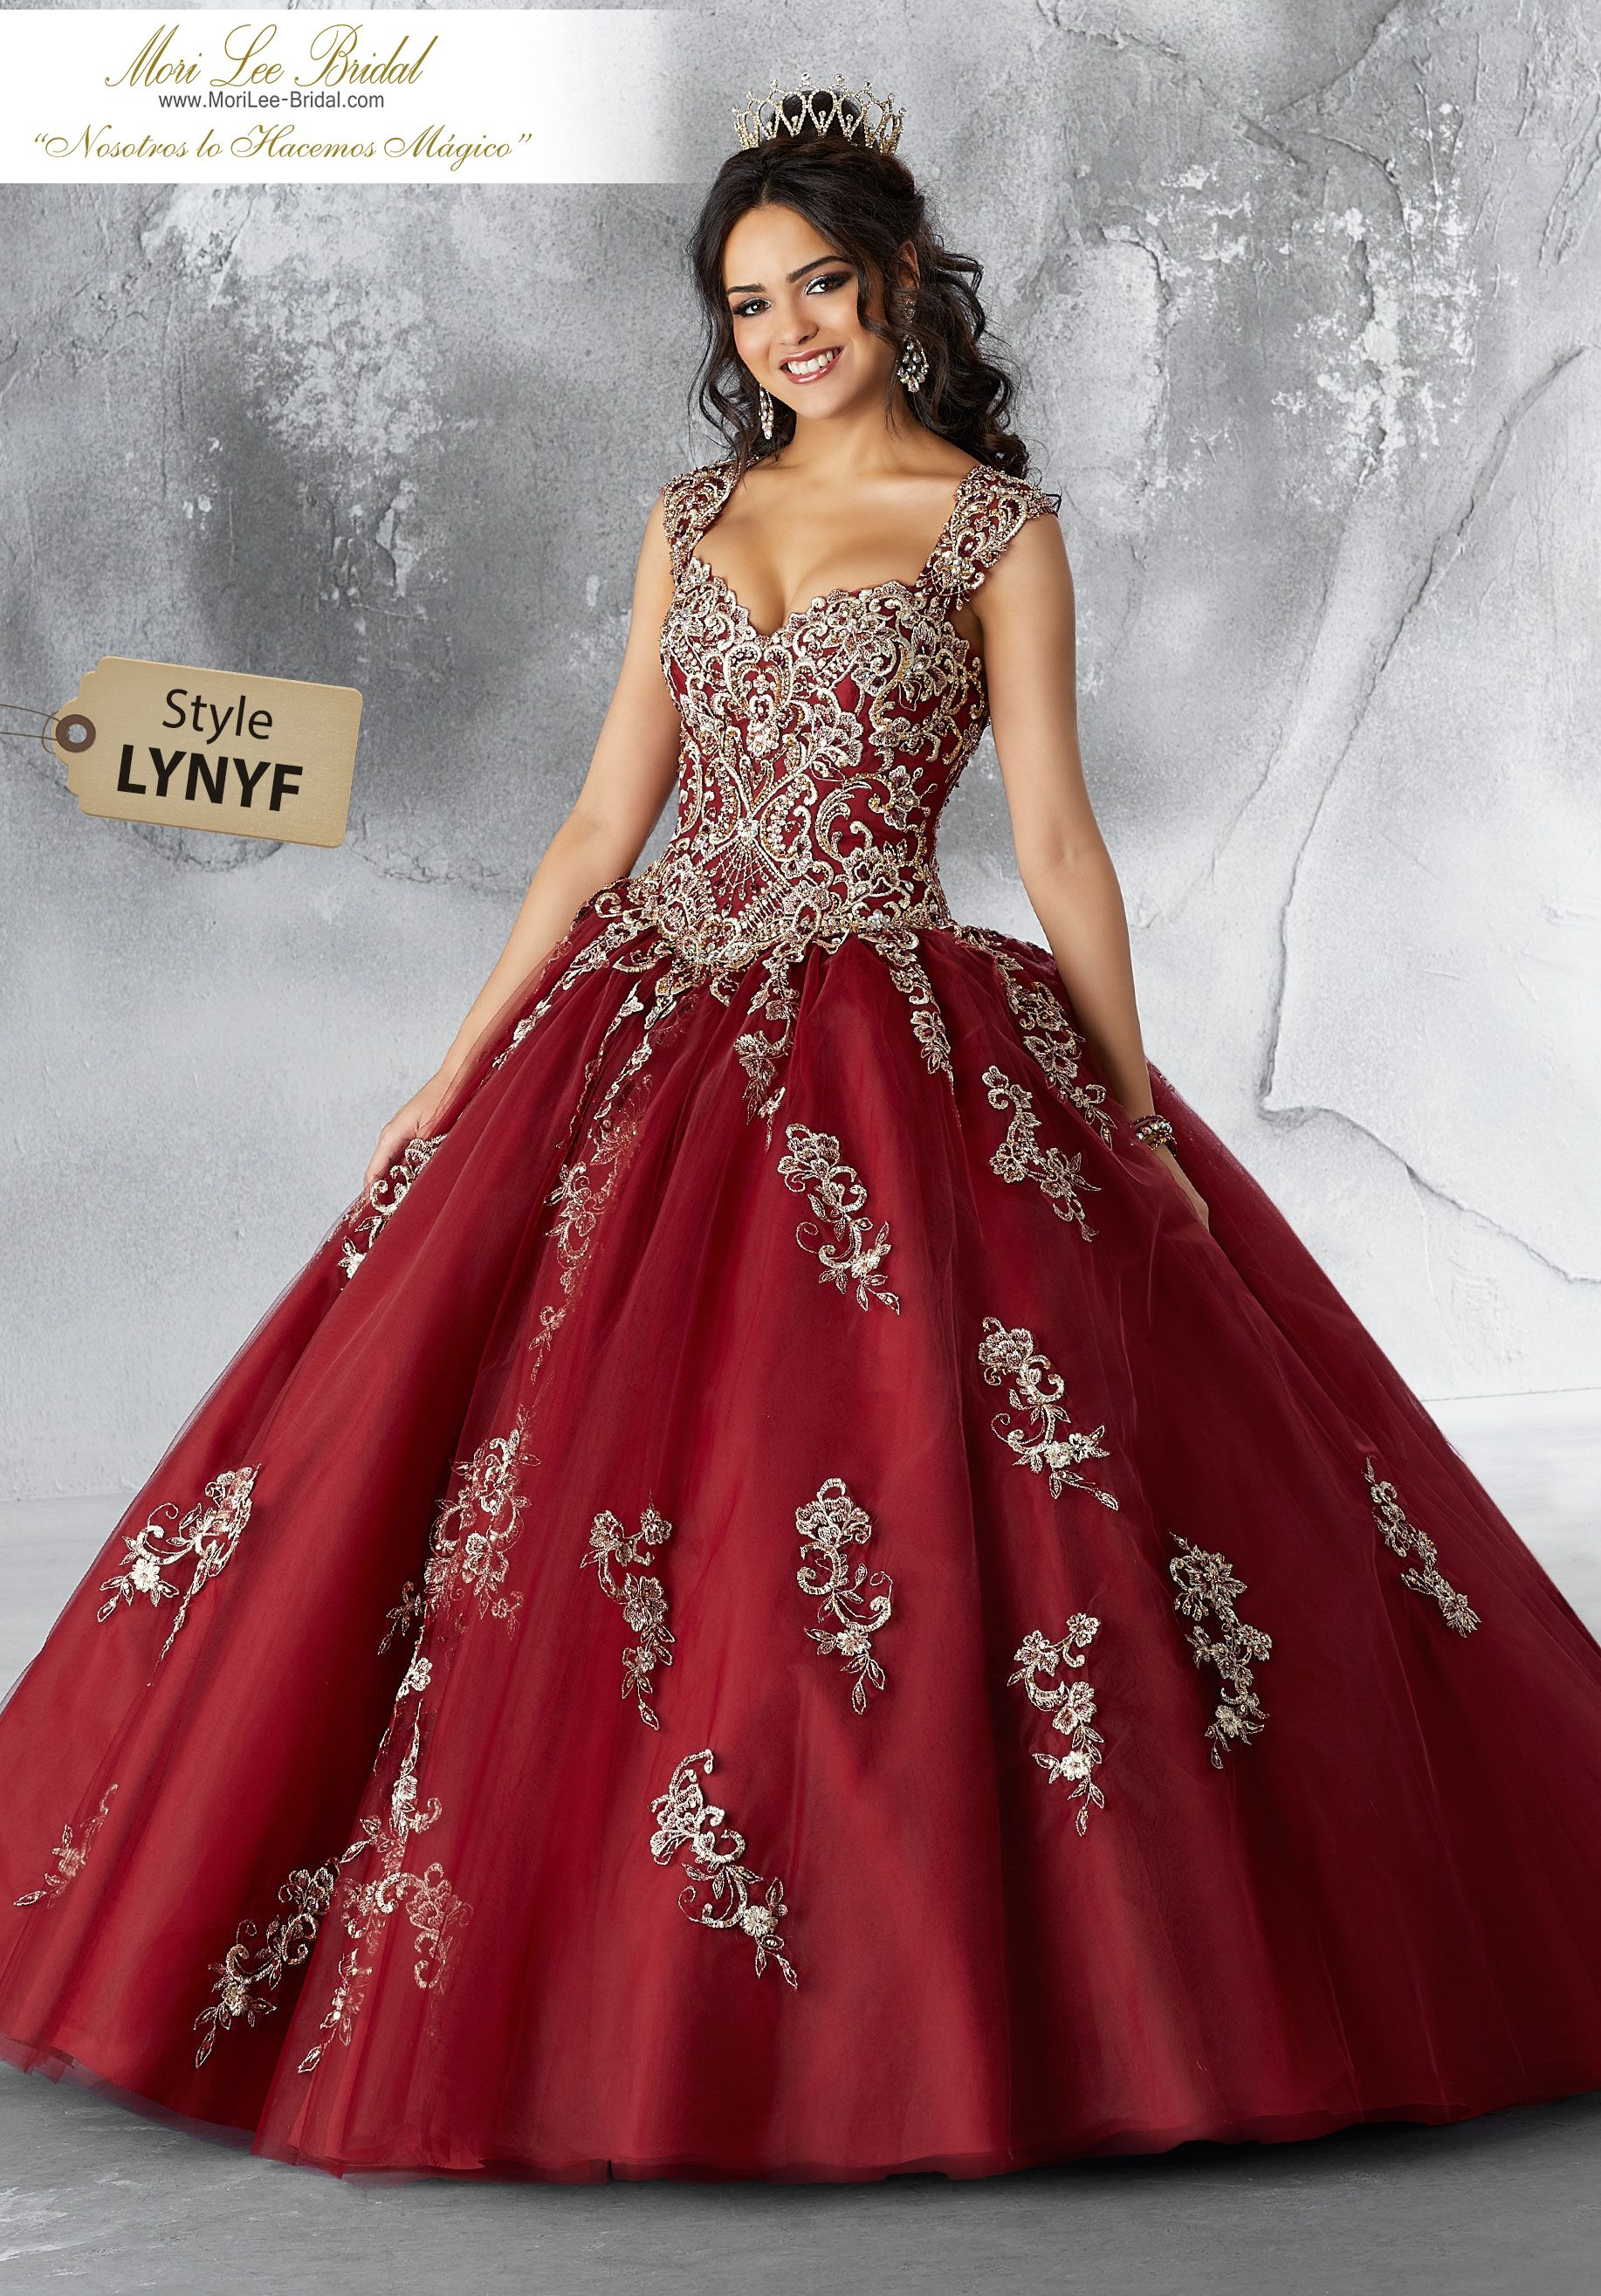 105a0a72708 Estilo LYNYF Contrasting Beaded Embroidery on a Tulle Ballgown Tulle  Quinceañera Dress Featuring Gorgeous Contrasting Embroidery Throughout the  Sweetheart ...